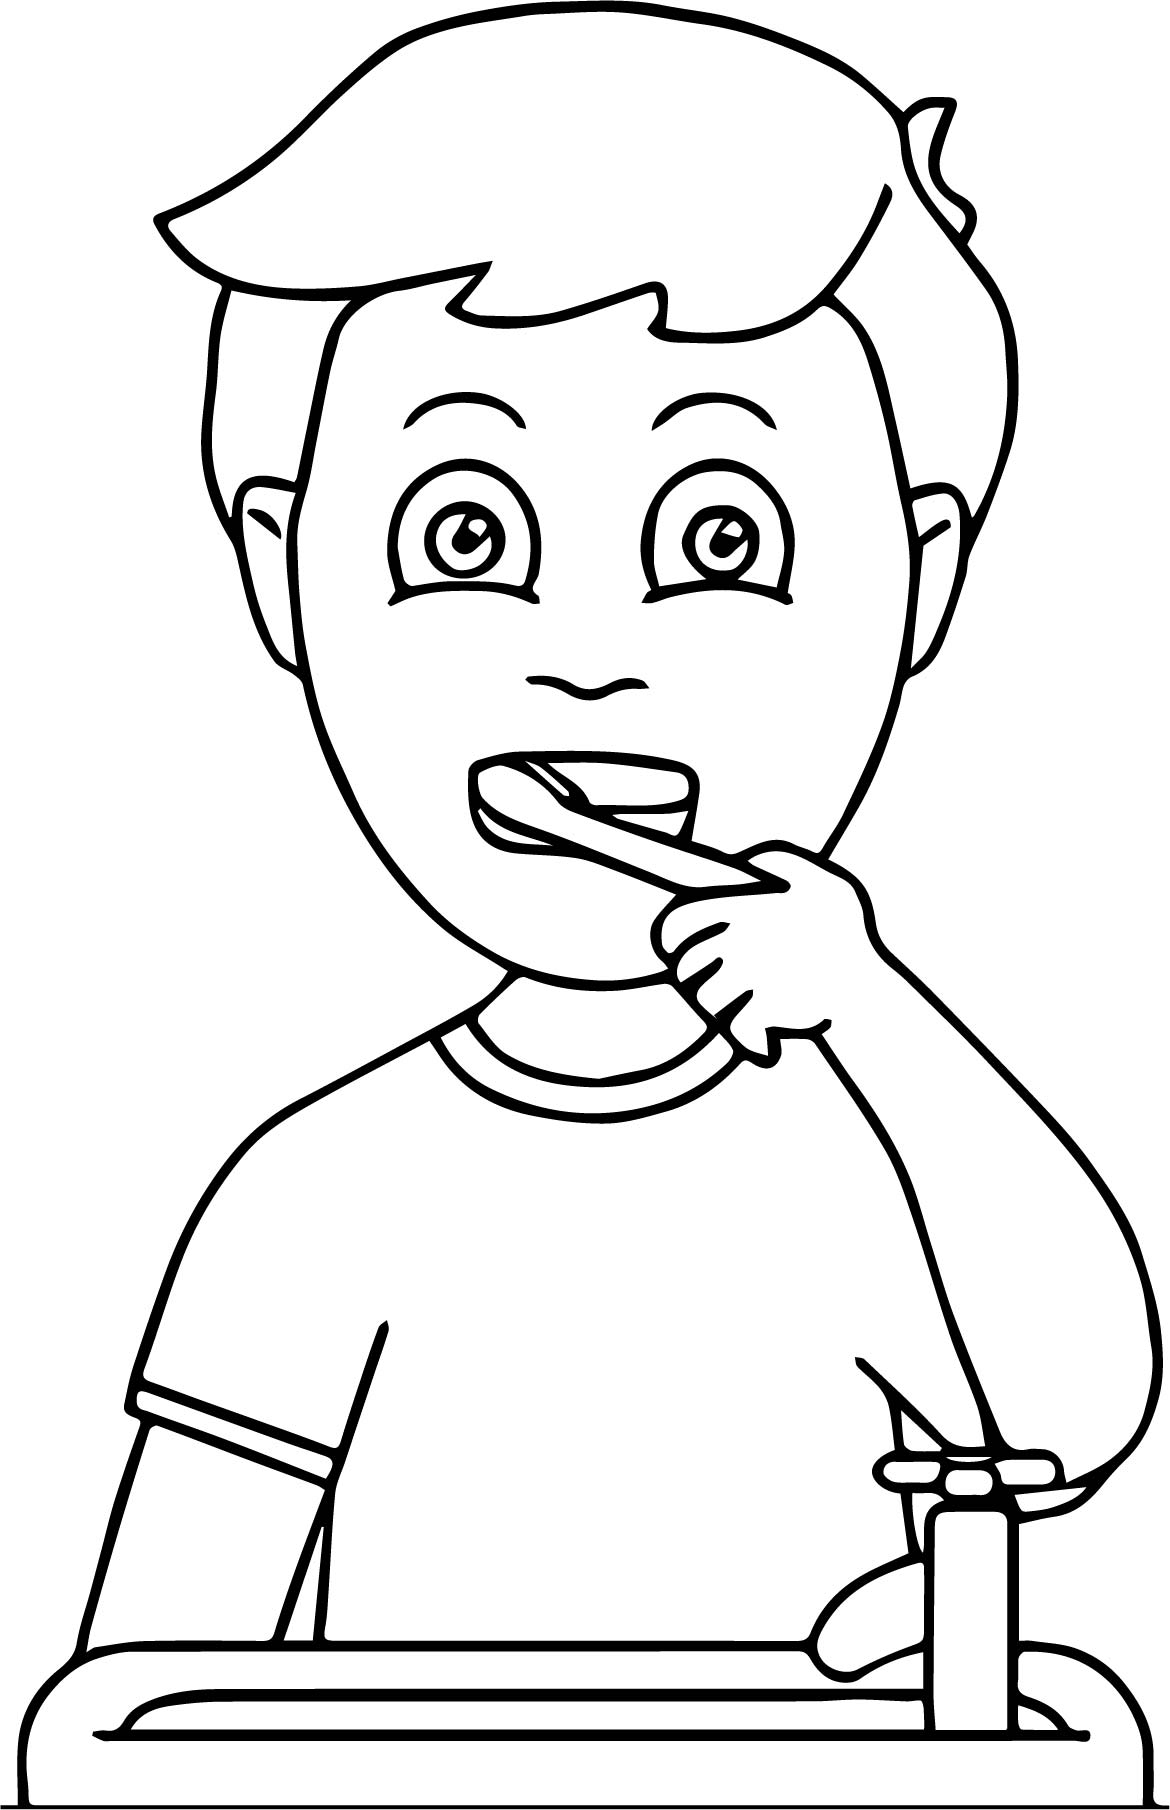 tooth brushing coloring pages | Dental Kids How Doing Tooth Brush Coloring Page ...